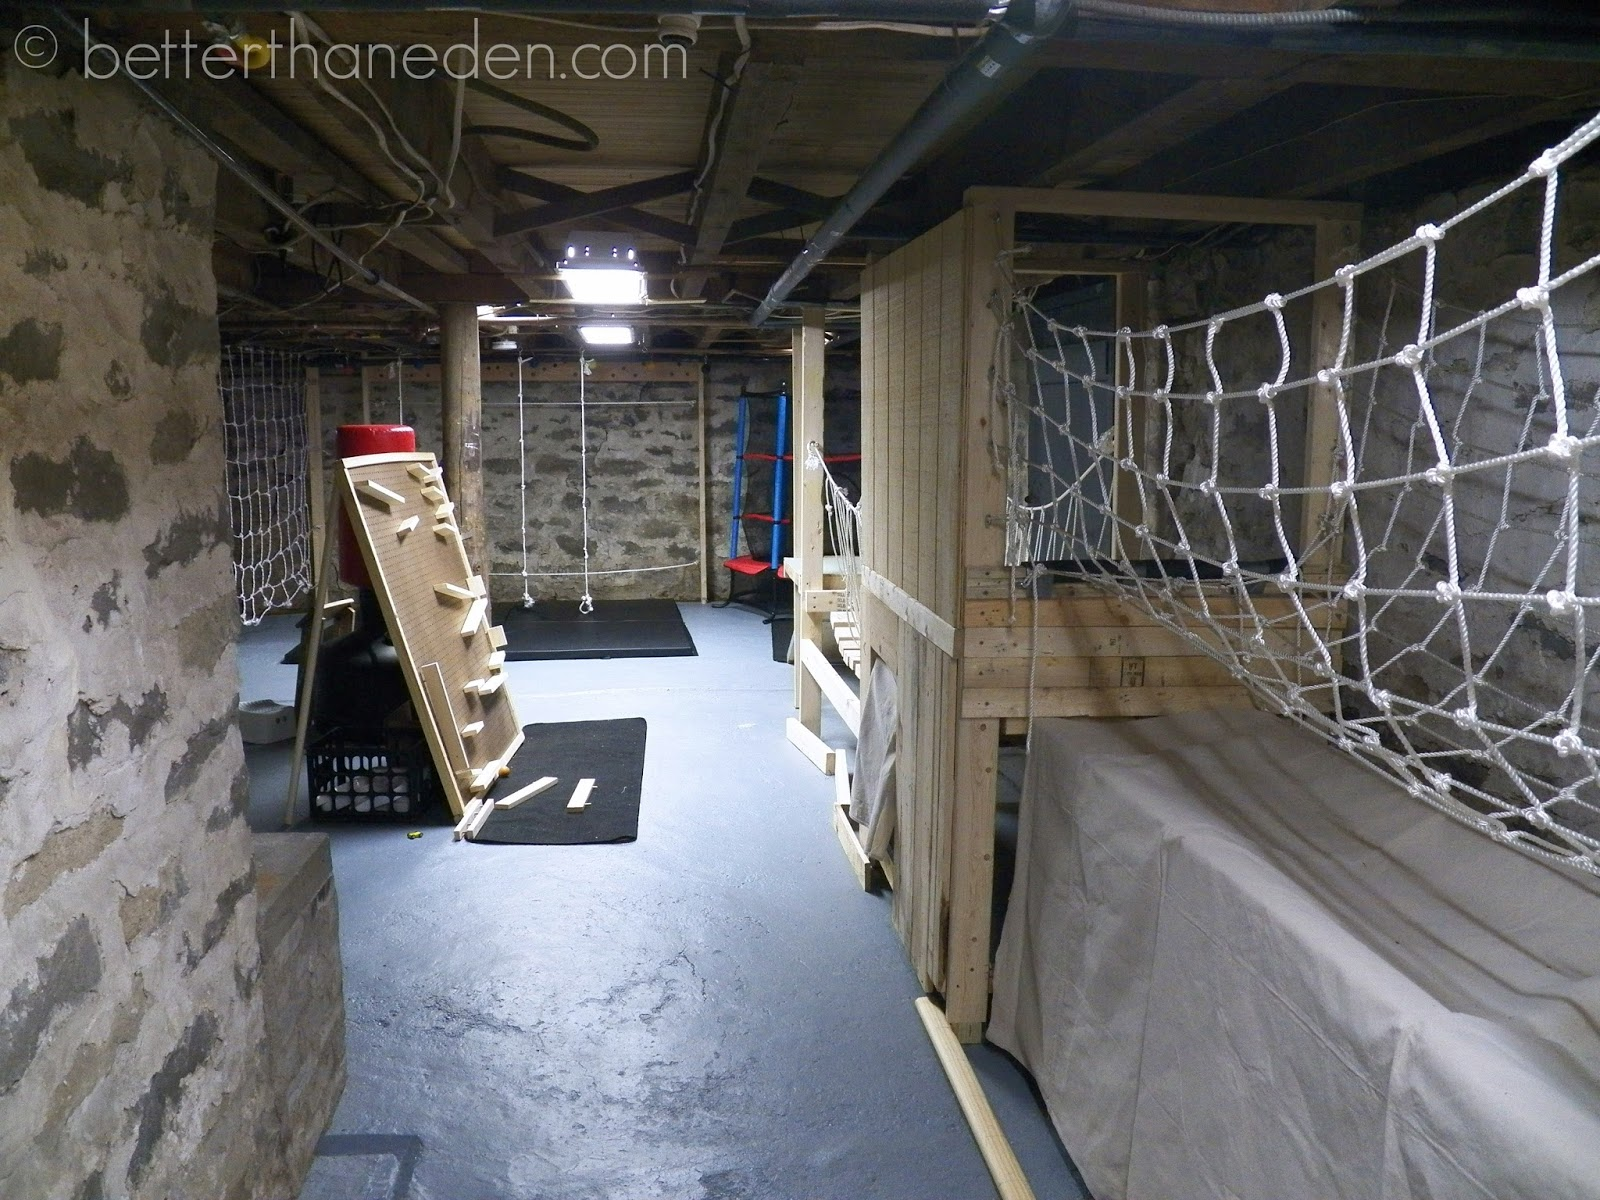 Basement Gym Ideas a basement gym for the boys - better than eden